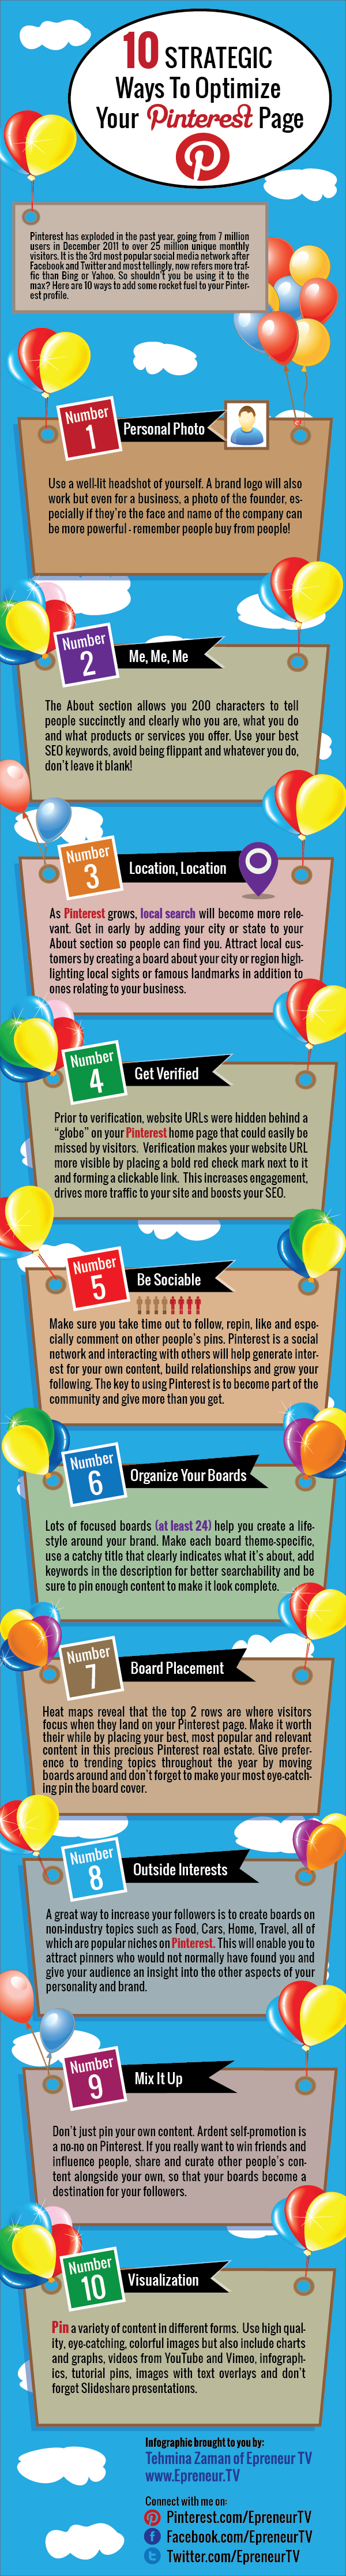 10 Ways To Optimize Your Pinterest Profile Pinterest Optimization [INFOGRAPHIC]